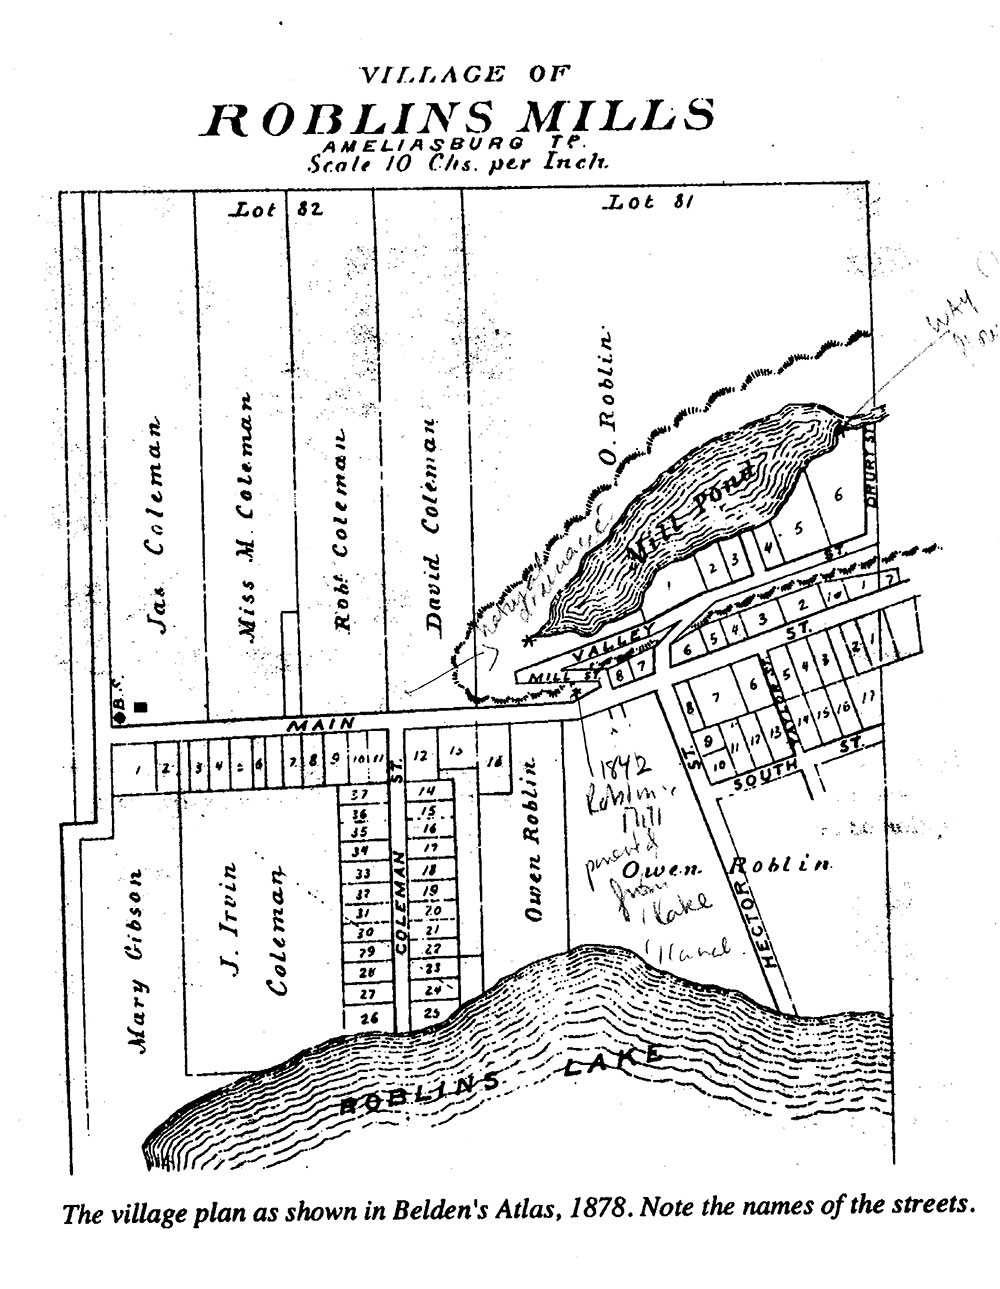 Village of Roblins Mills map